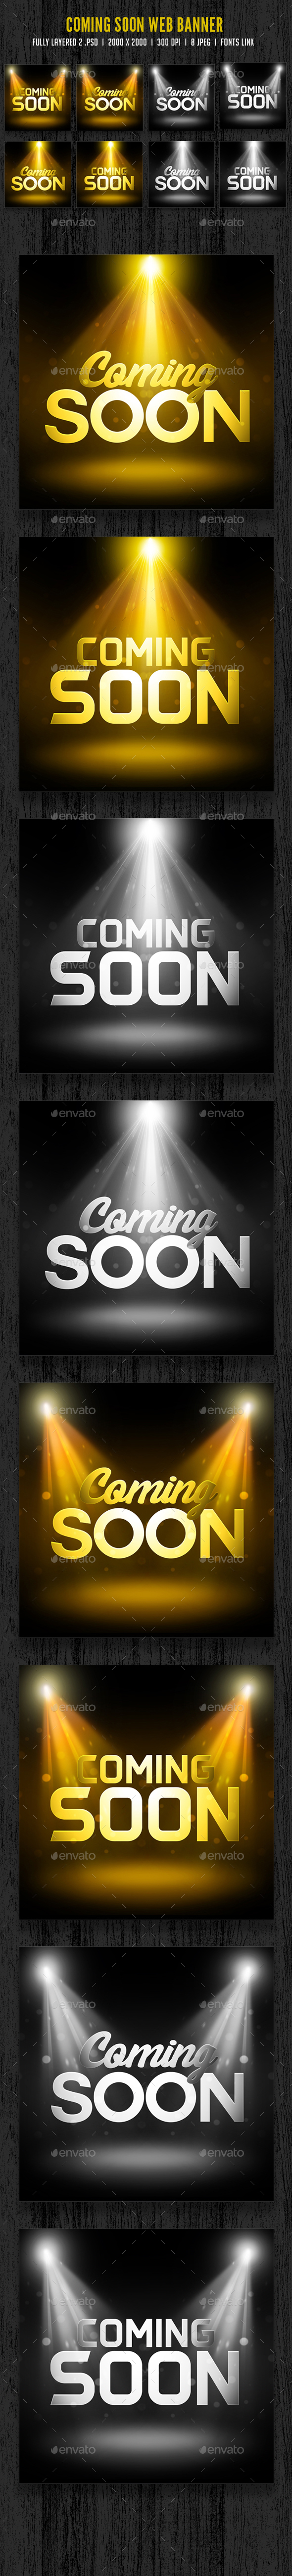 Coming Soon Banner - Banners & Ads Web Elements